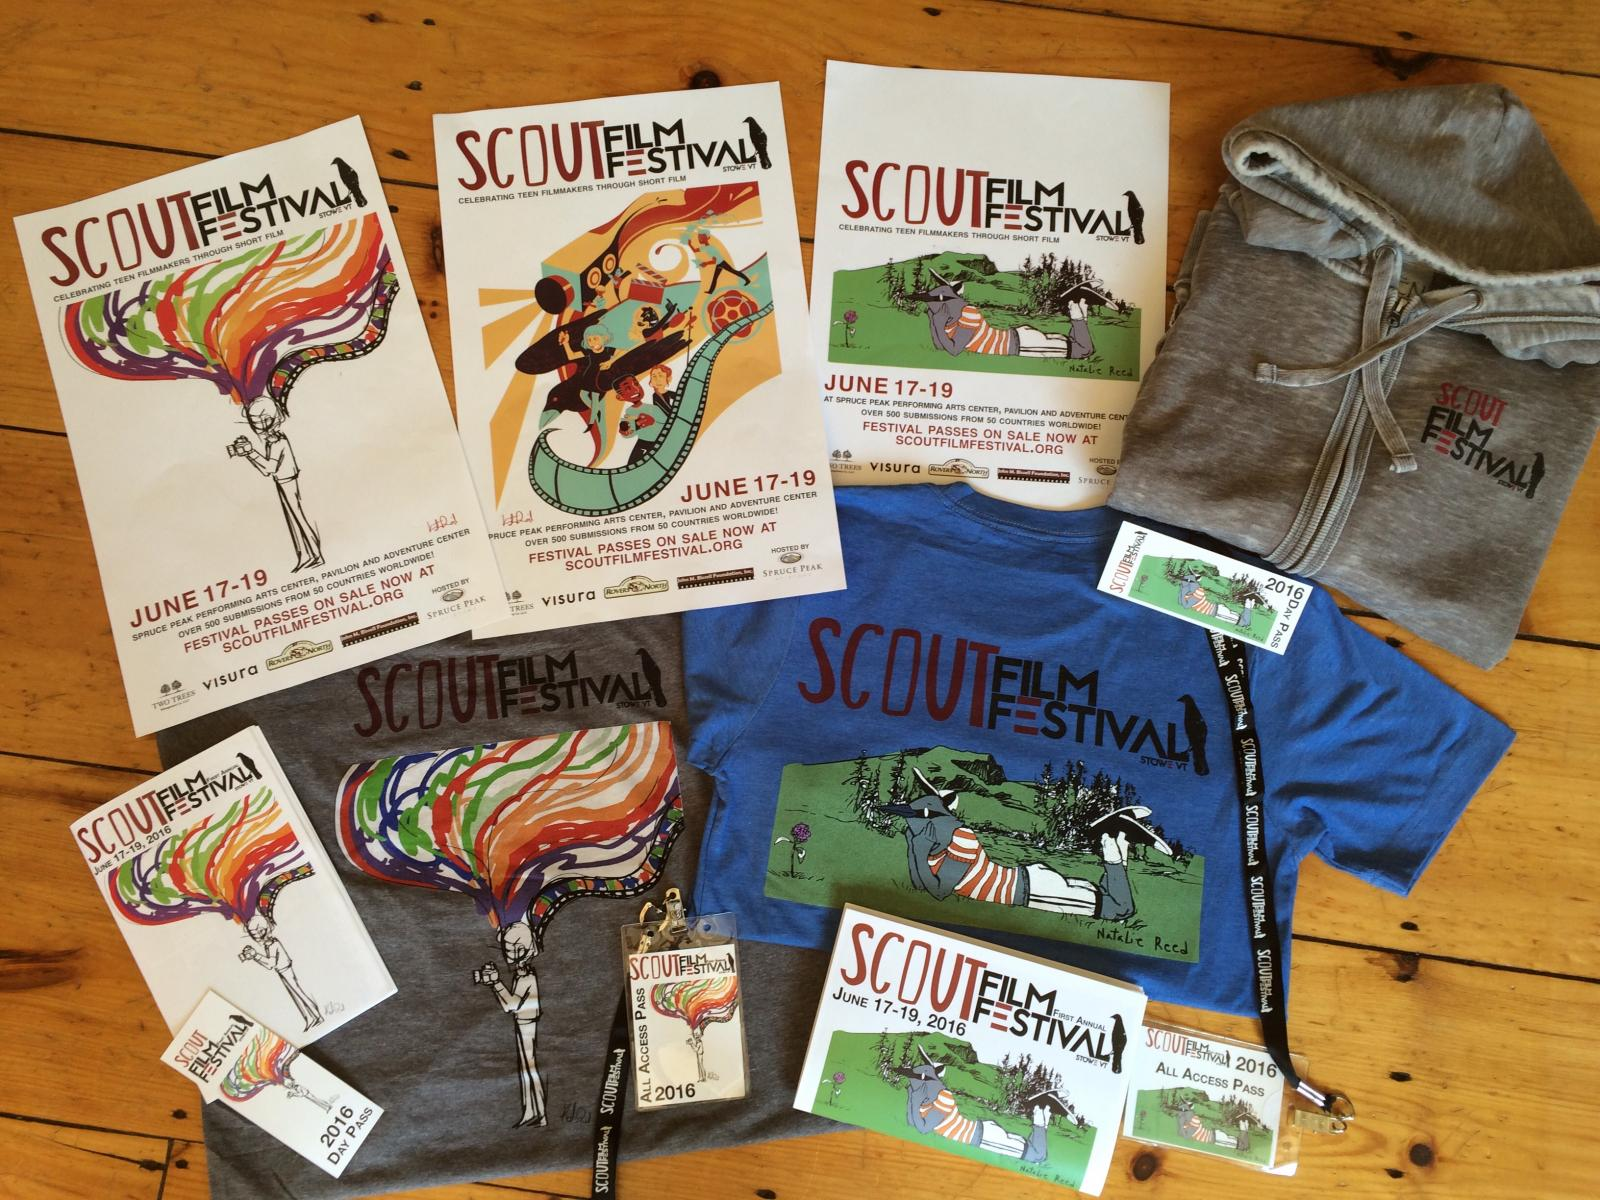 Photography image - Loading Scout_Youth_Art_Promo_Materials_and_Merch.jpg